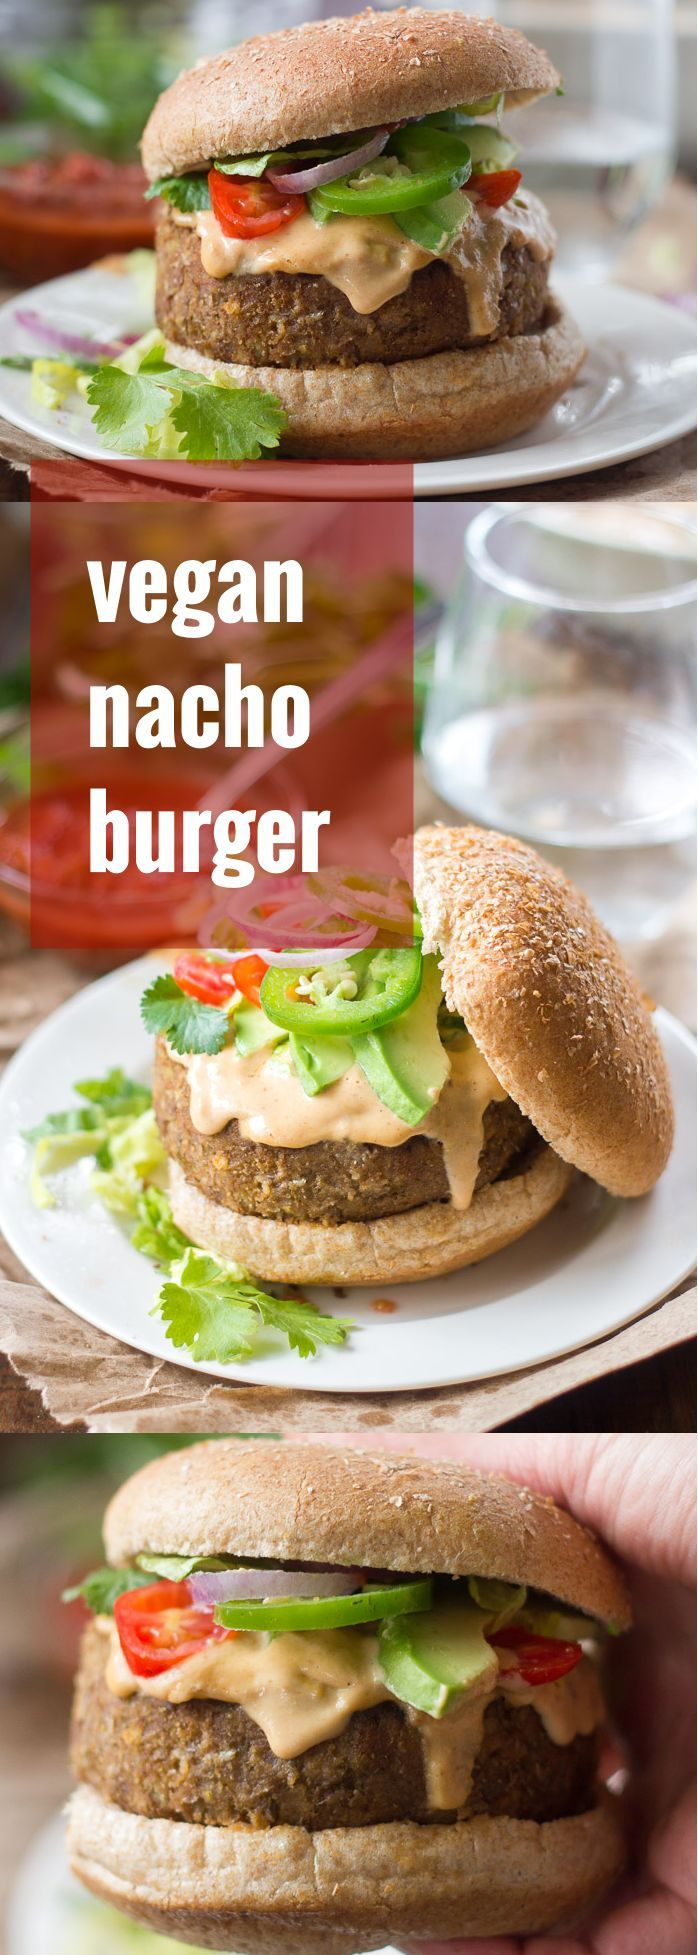 These spicy vegan nacho burgers are made with lentil patties topped with creamy tahini nacho cheese and piled high with your favorite nacho toppings.